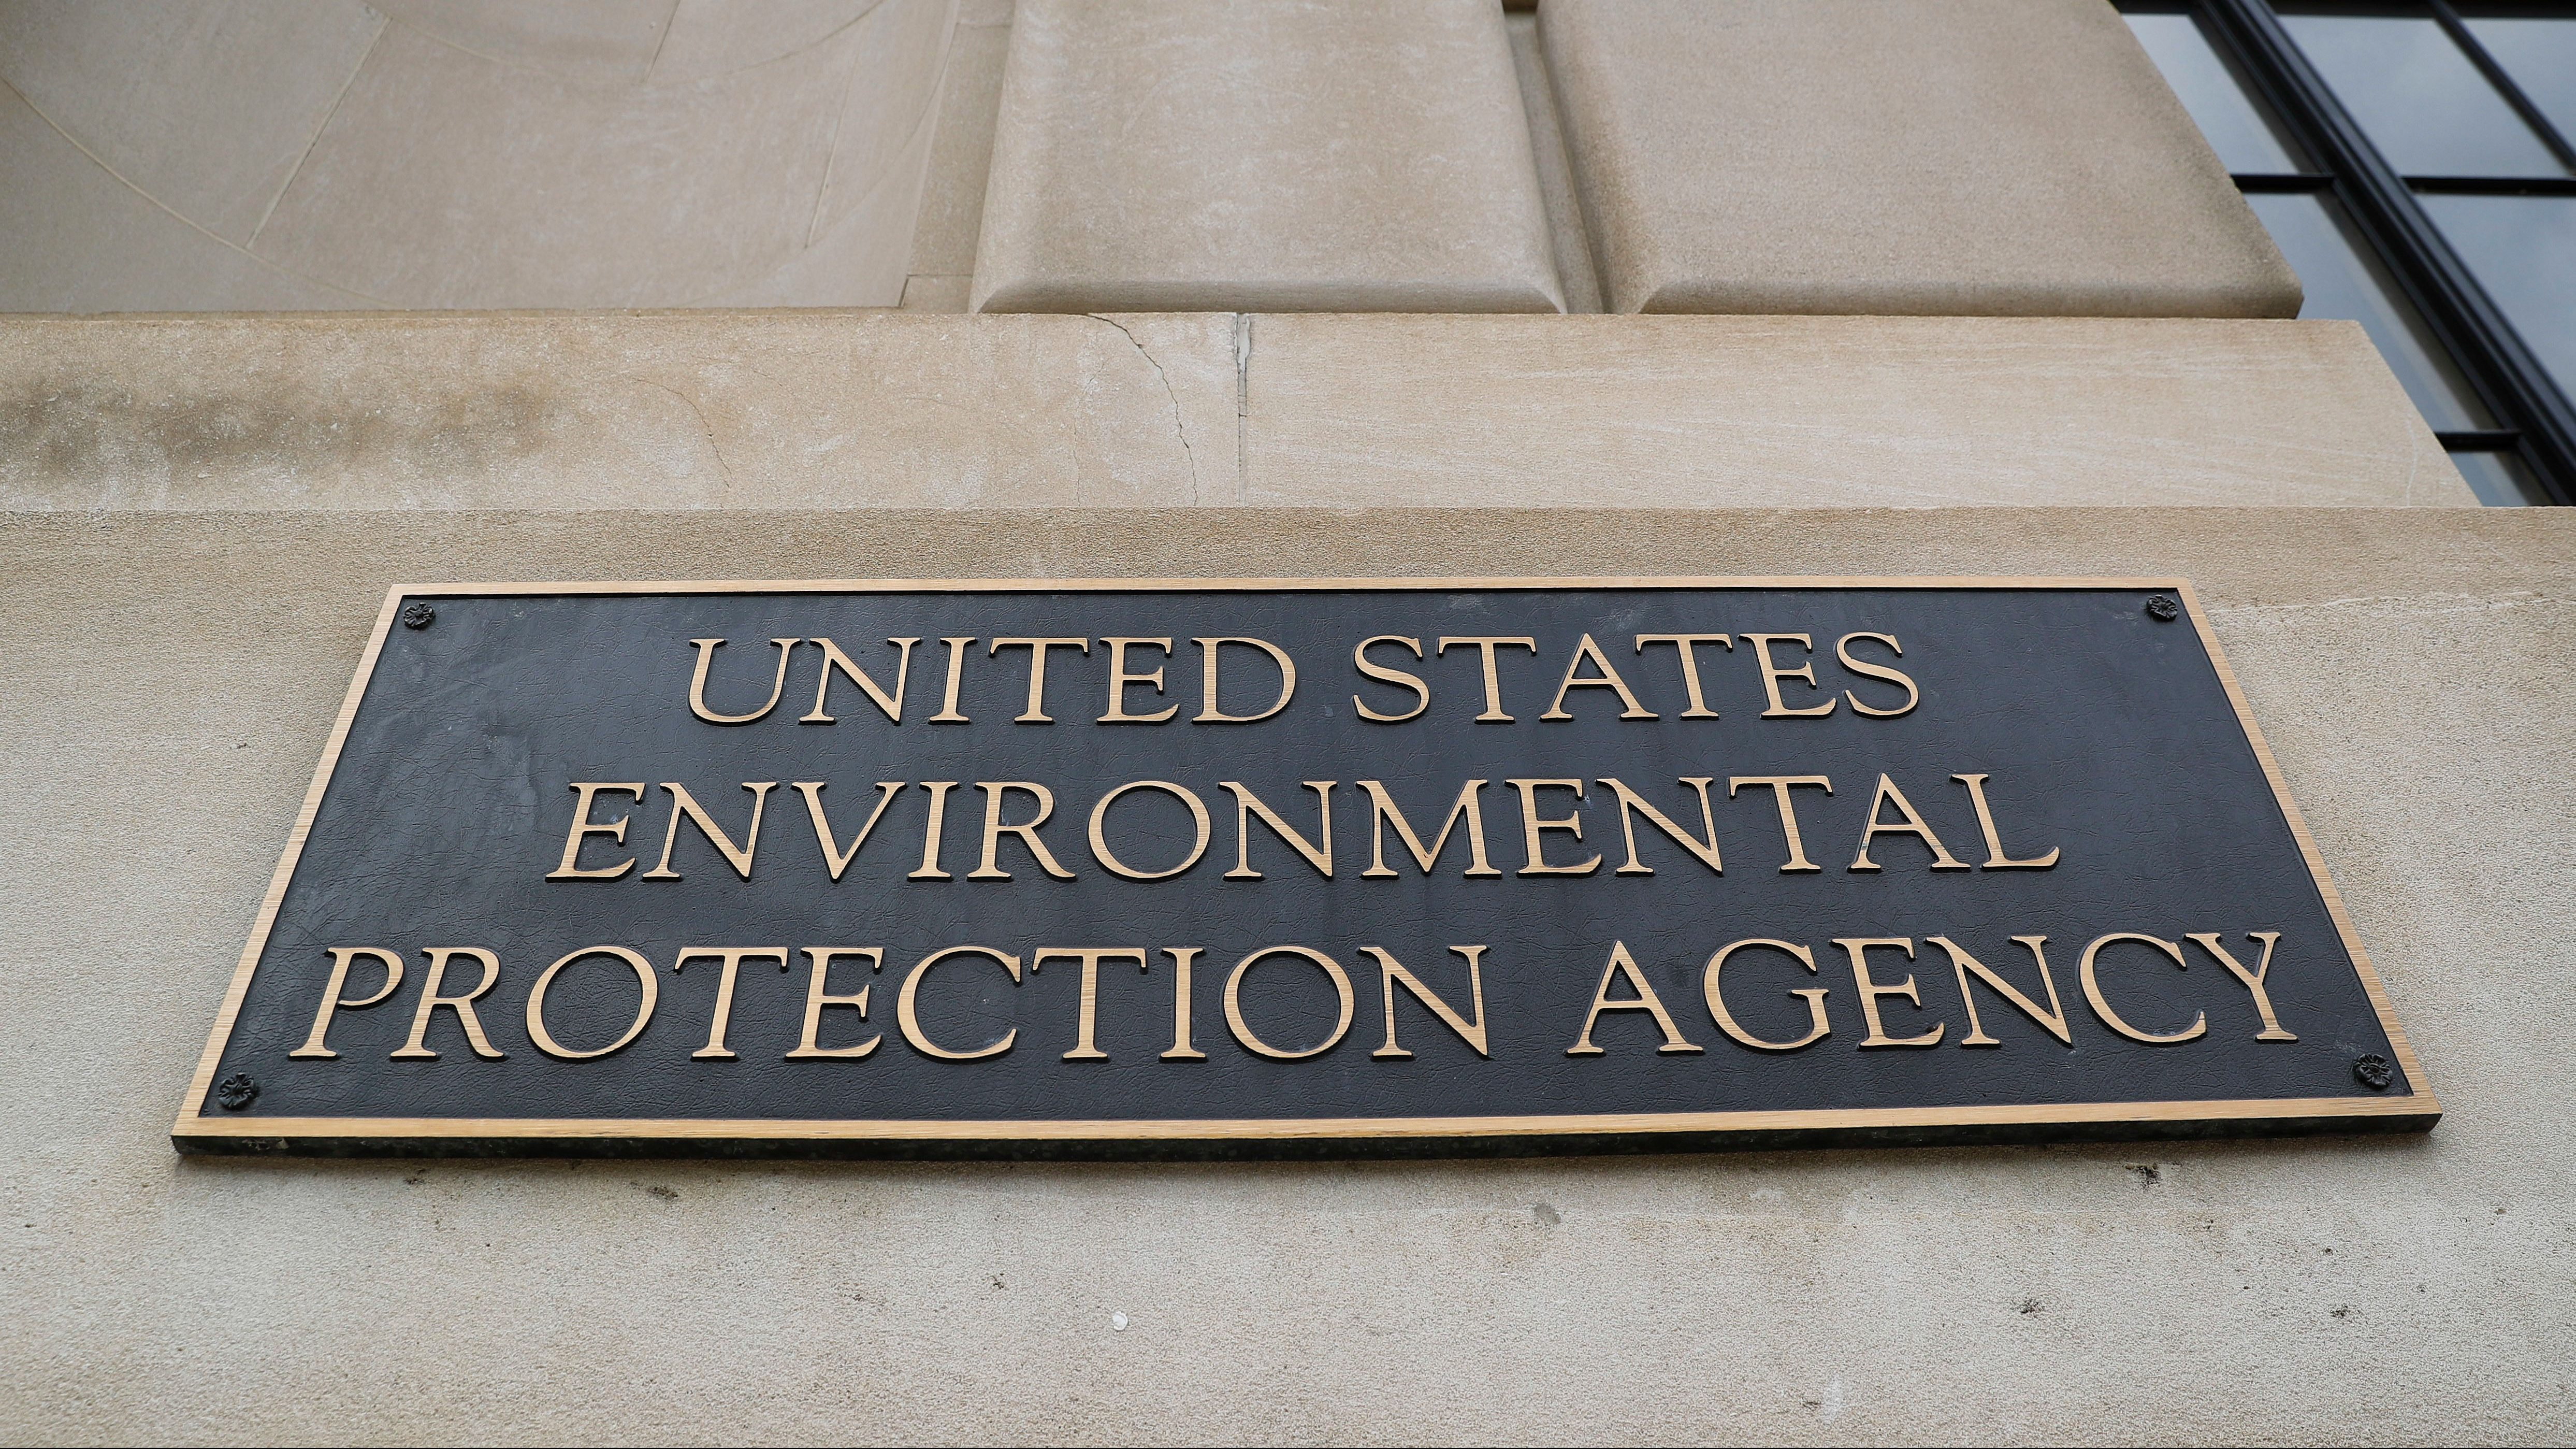 The US Environmental Protection Agency building